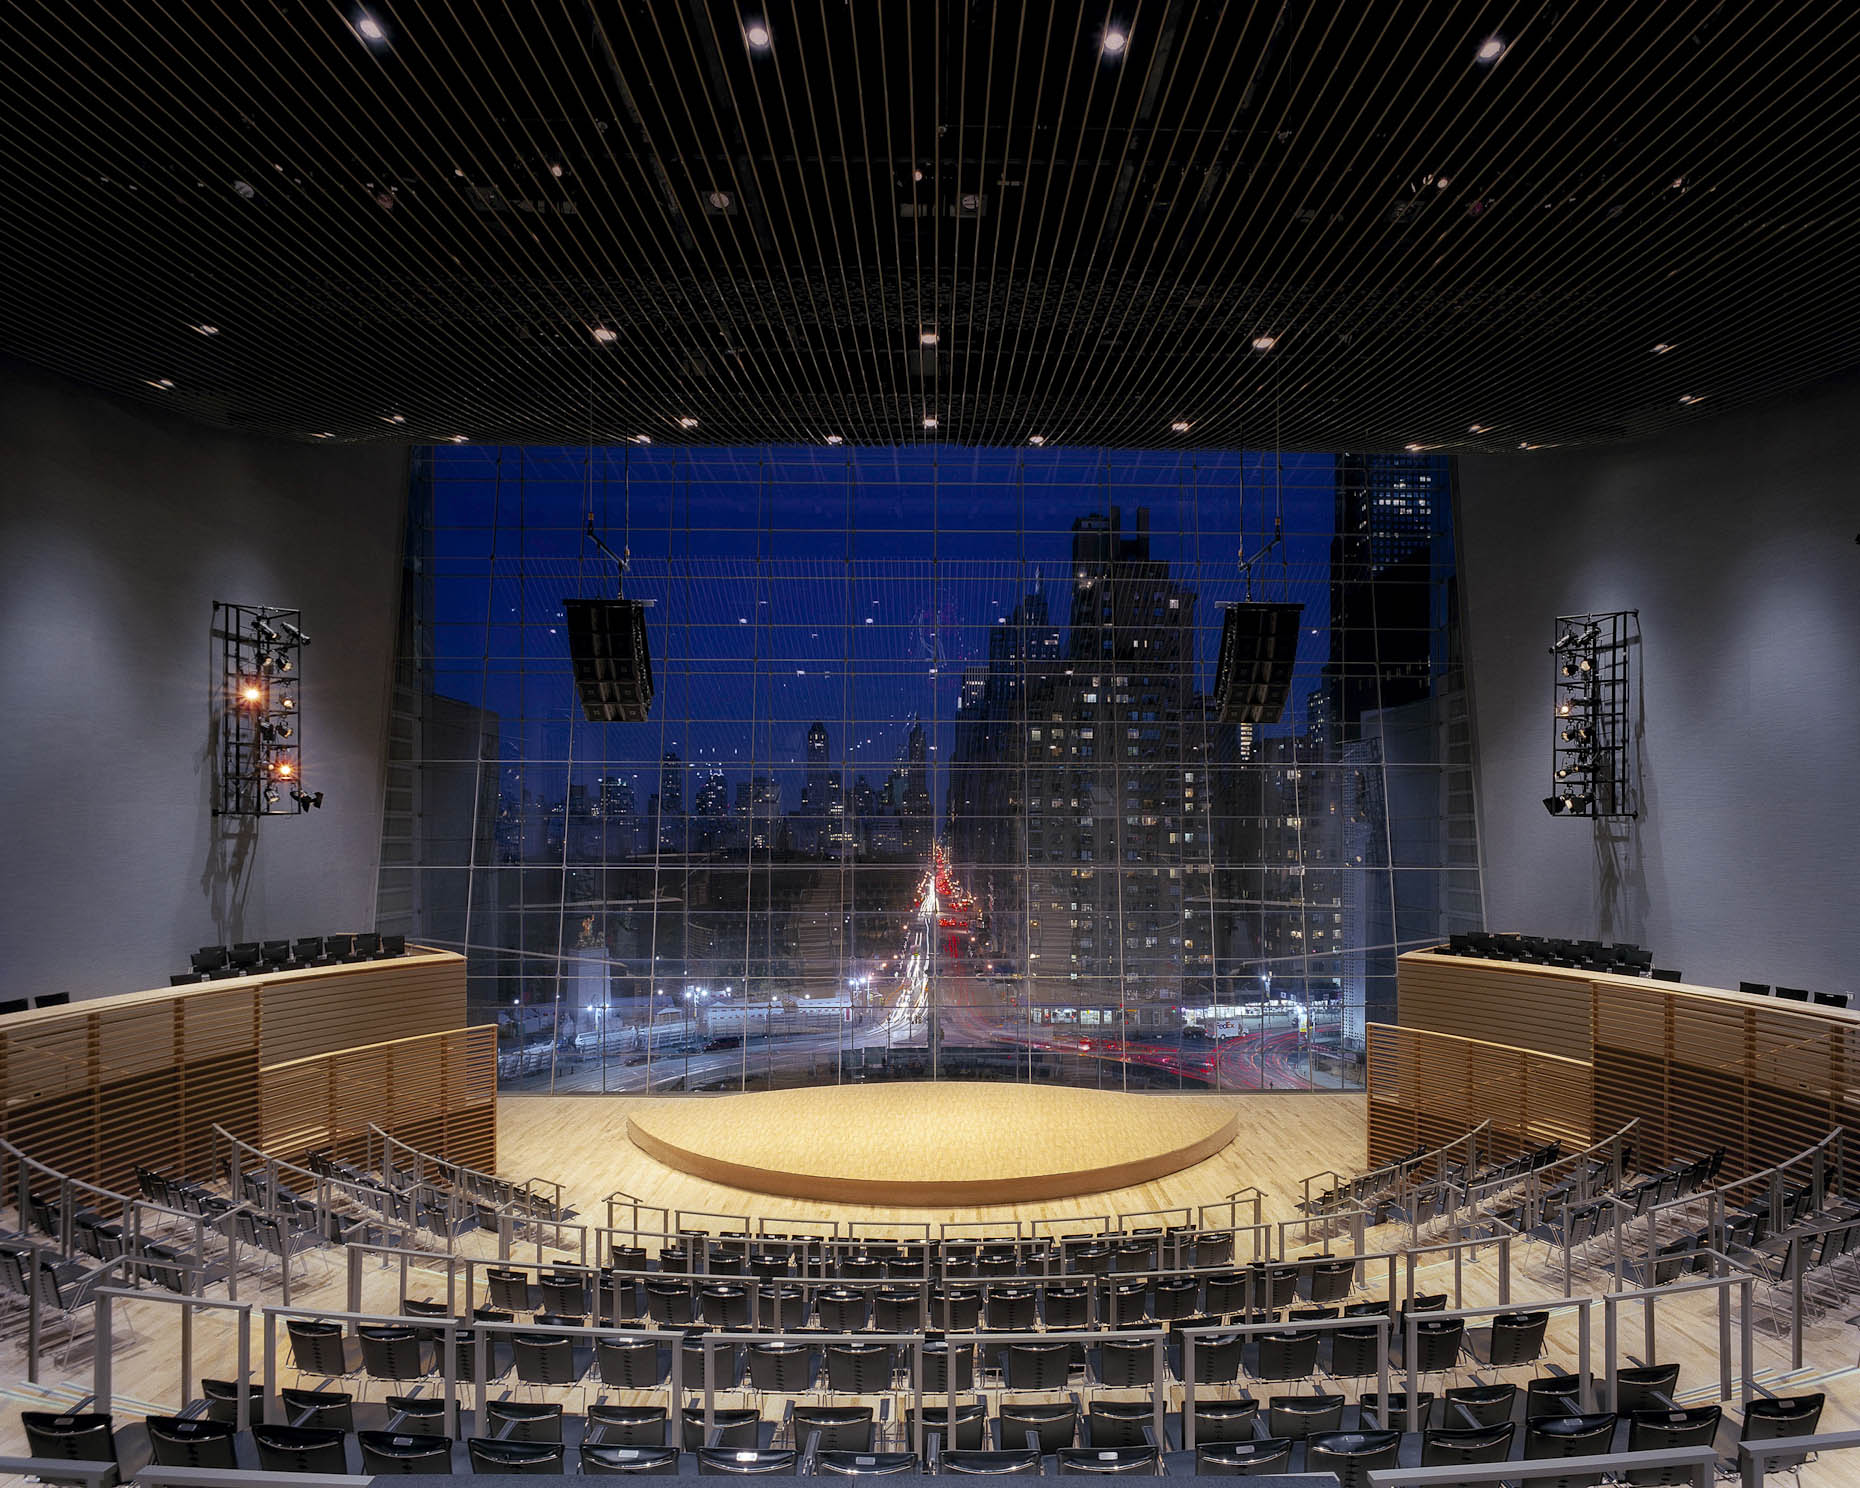 Jazz at Lincoln Center by Rafael Viñoly Architects photographed by Brad Feinknopf based in Columbus, Ohio